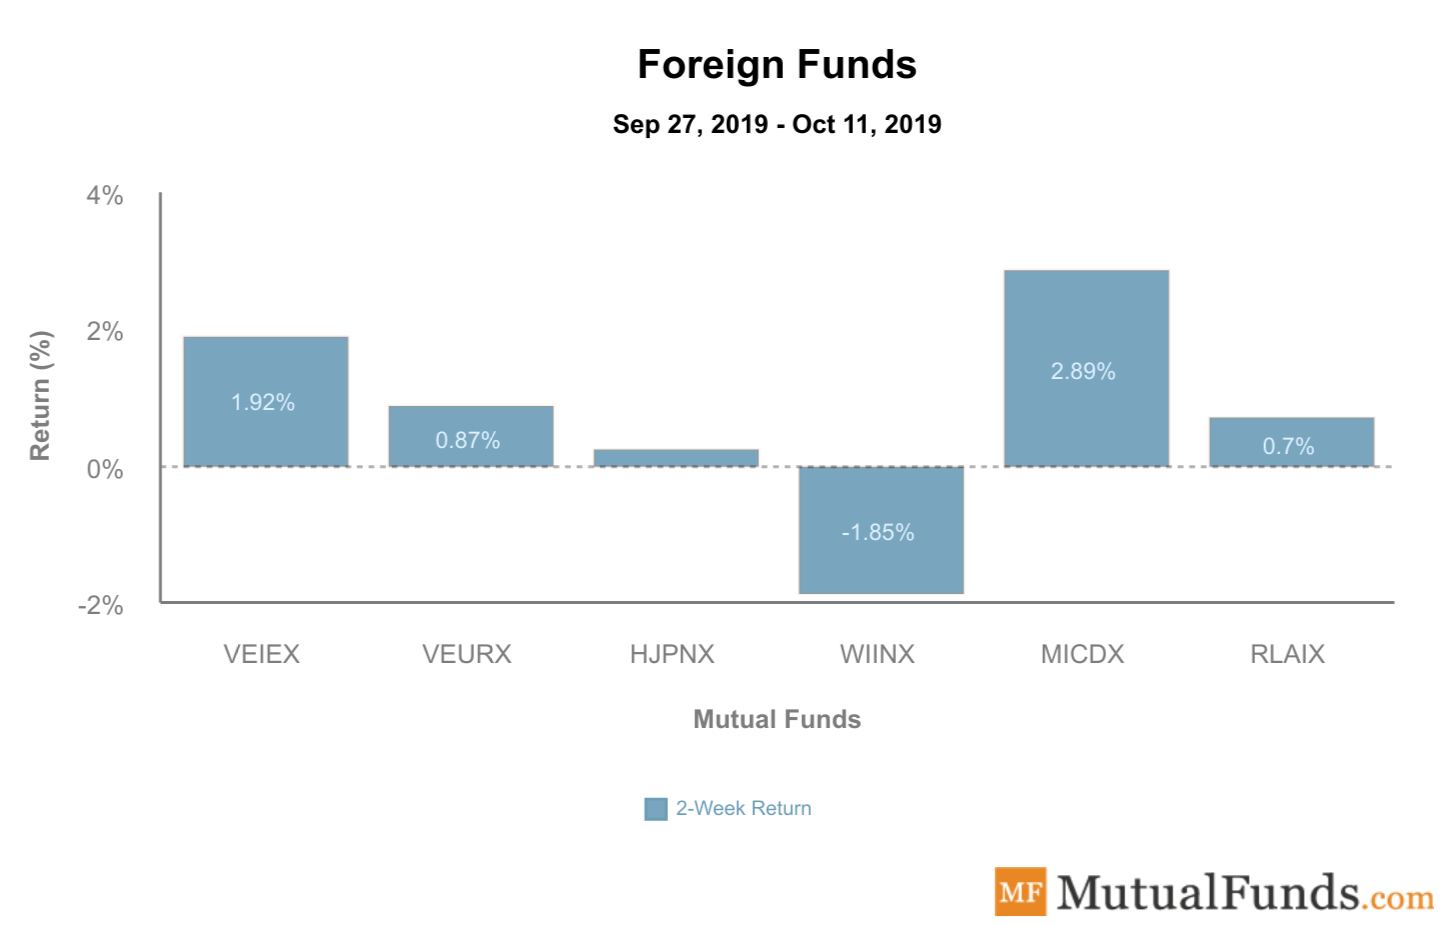 Foreign Funds Performance - Oct 15, 2019